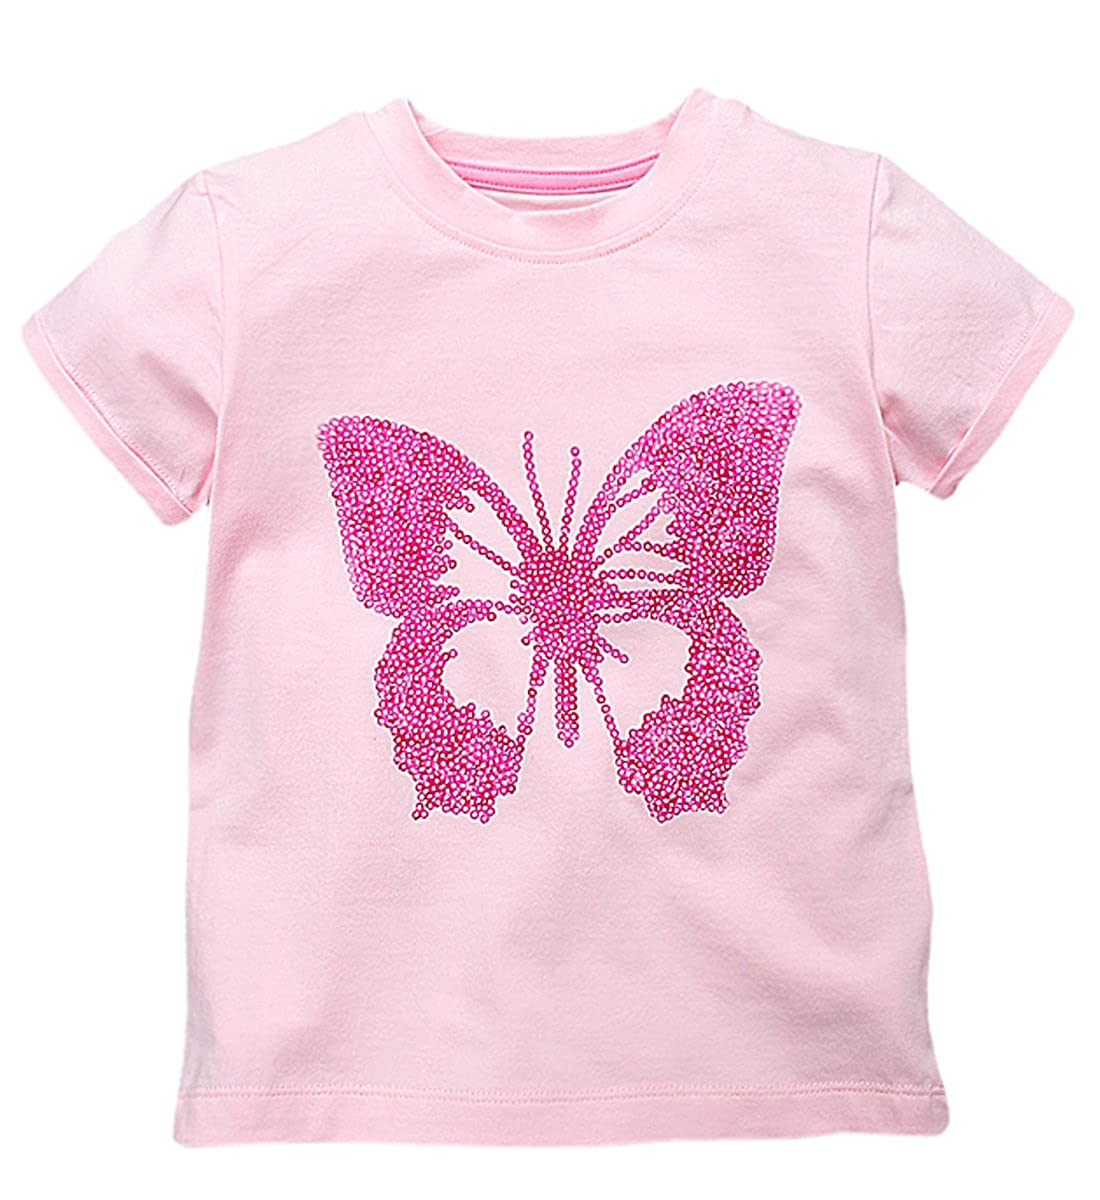 03f2adcaaa9 100% cotton kid t shirt girl for soft. toddler girls t-shirts short  sleeves. t-shirt kids for girl a band on the neck.